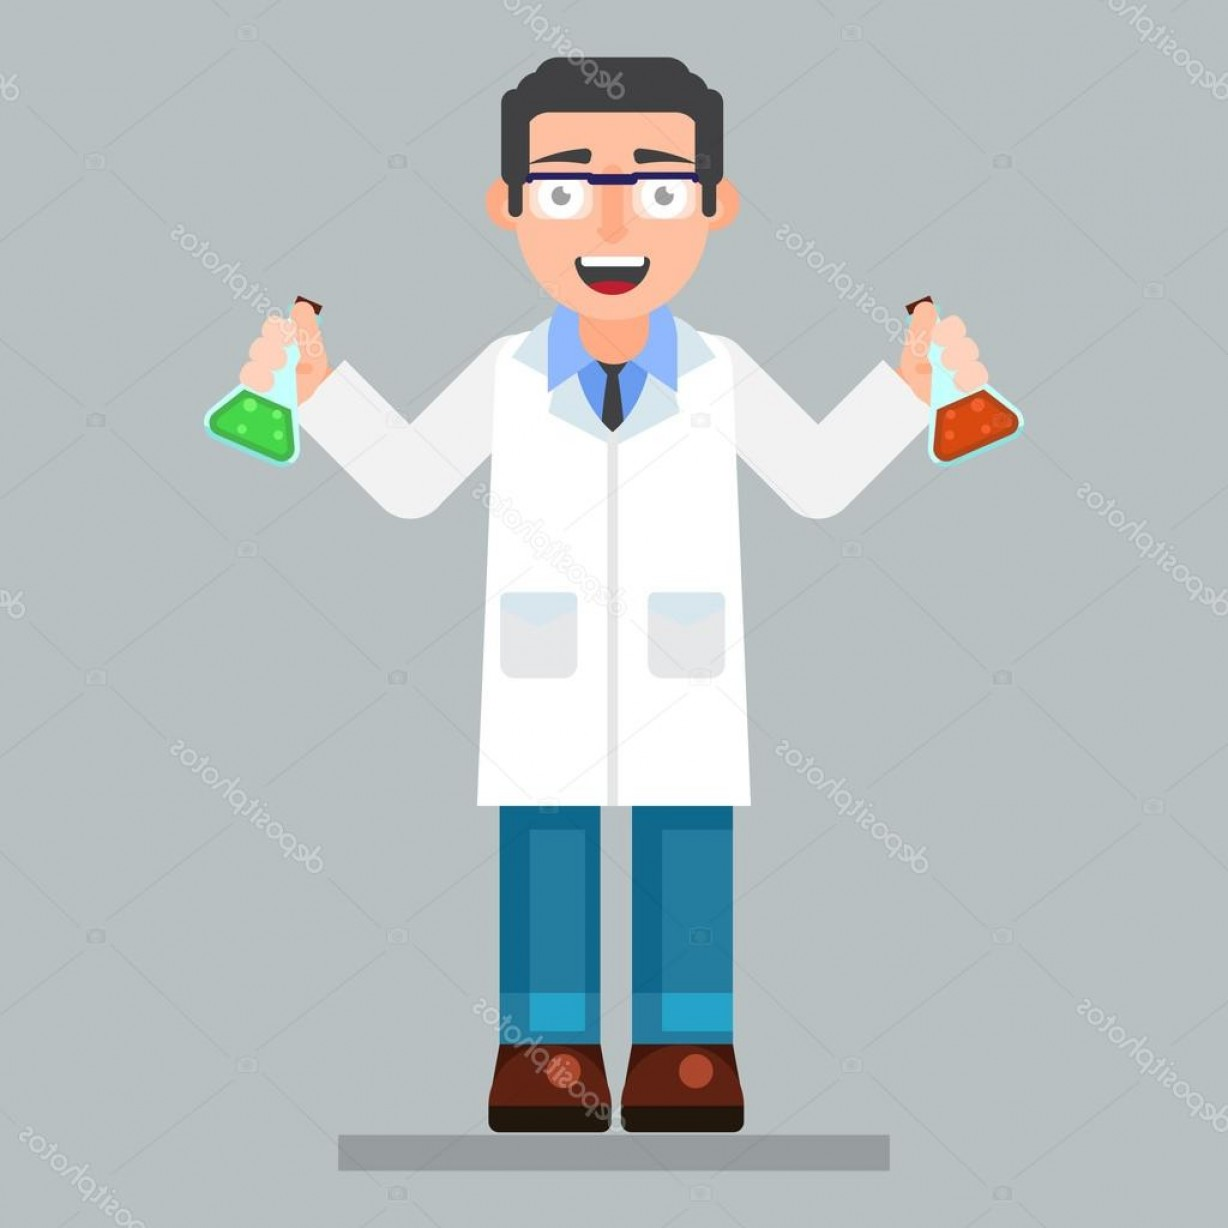 Lab Coat Cartoon Vector: Stock Illustration Scientist Character Wearing Glasses And